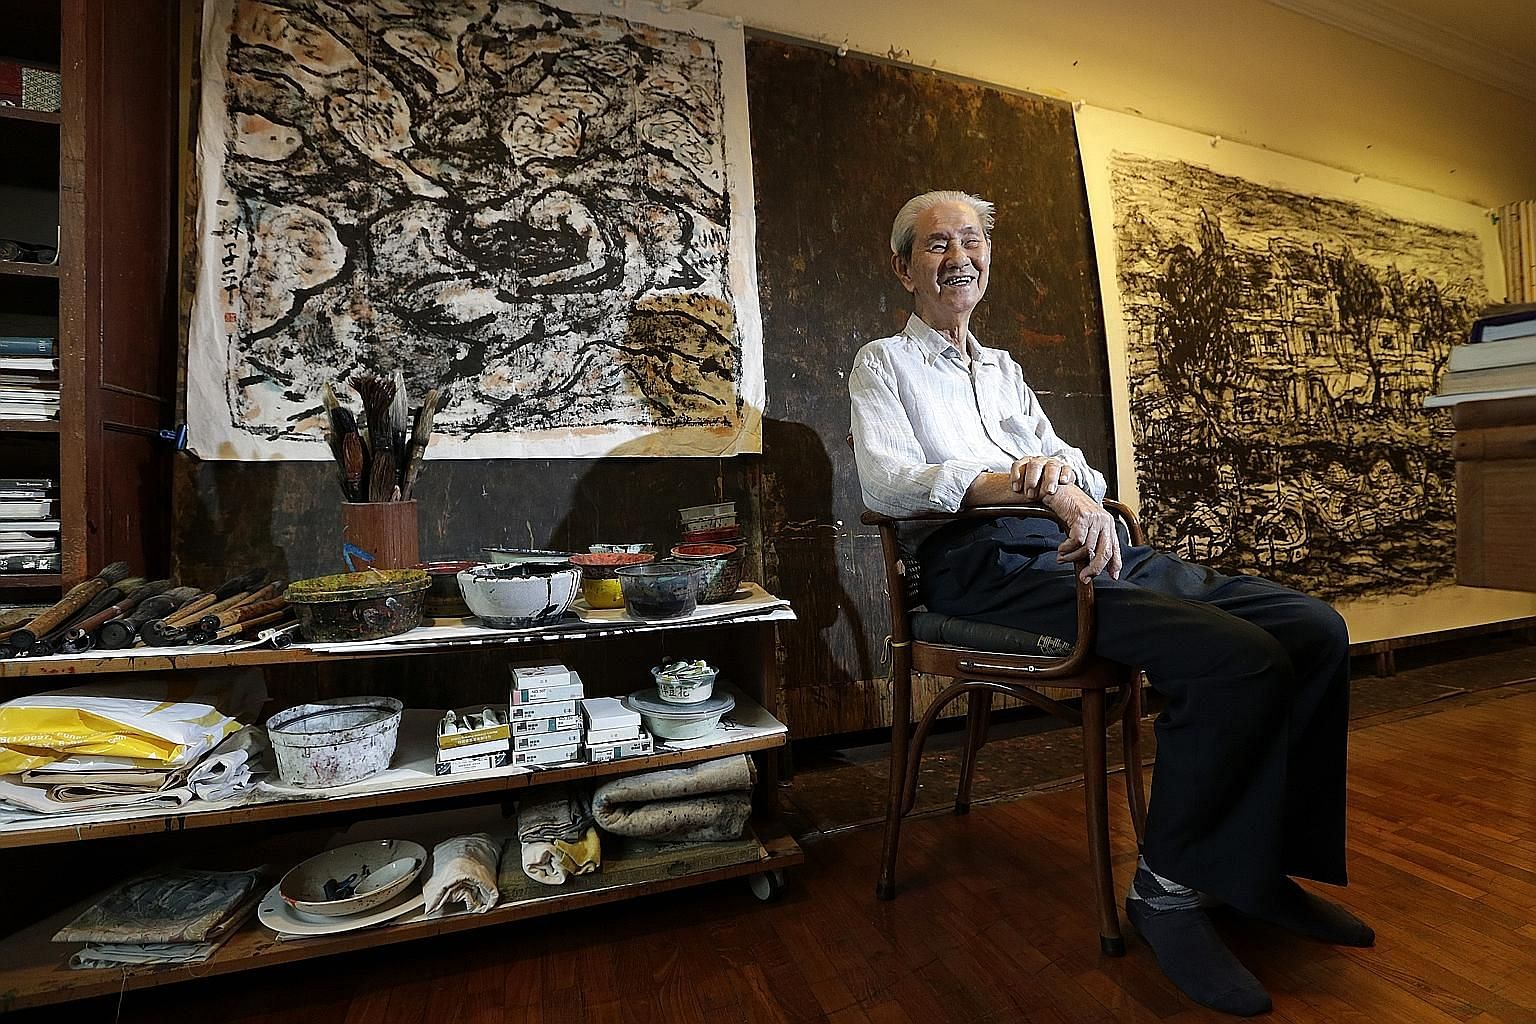 Artist Lim Tze Peng with some of his works in his home studio.